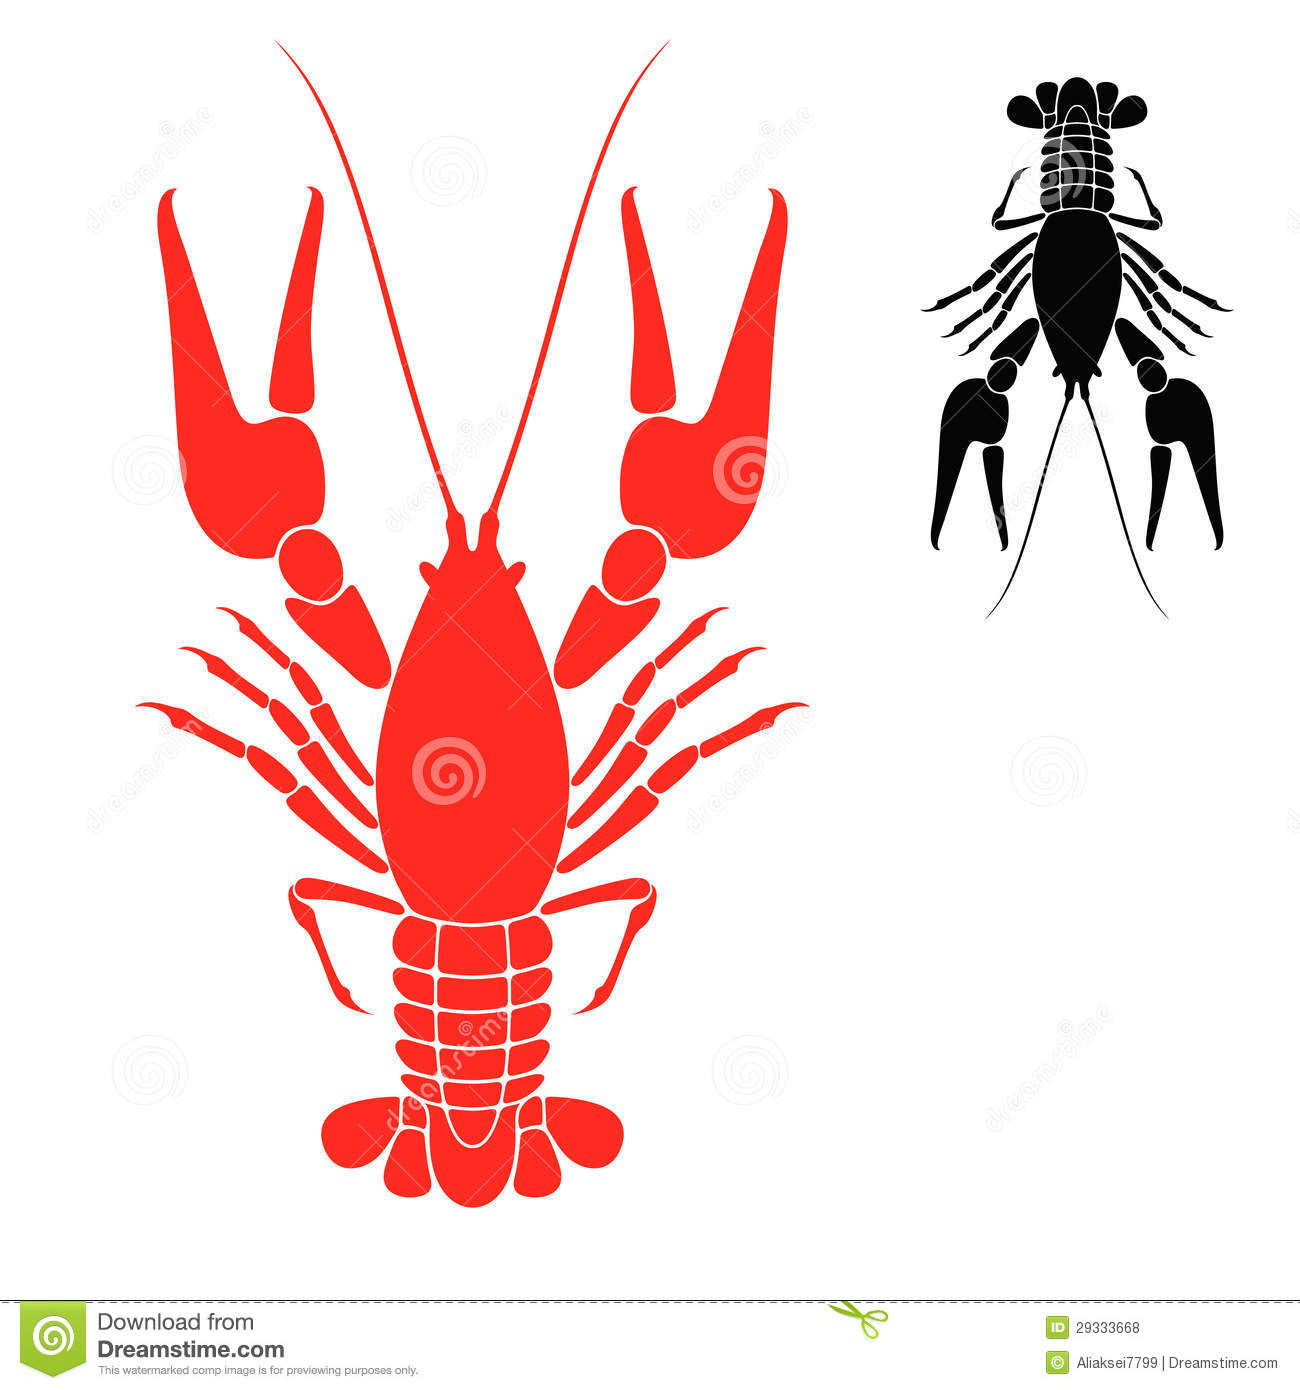 Crayfish Logo. Vector illustration (EPS 10) + alternate file (CDR 10).